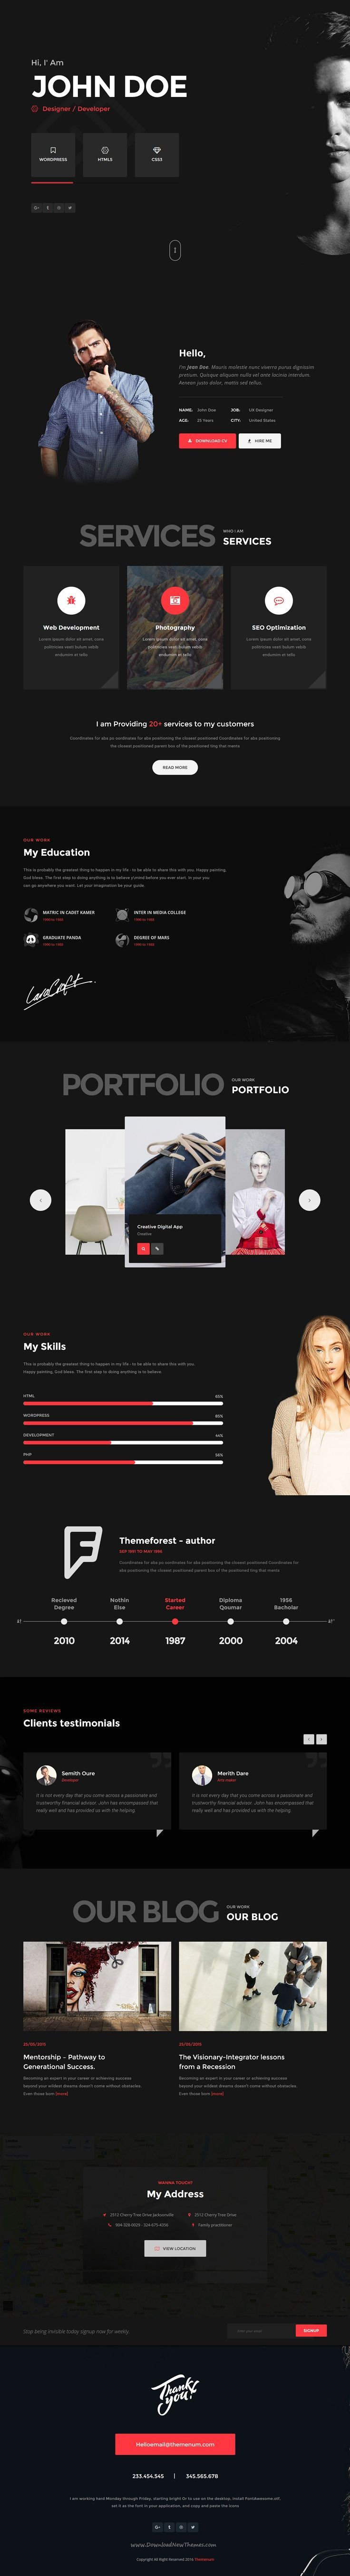 Themenum is a perfect vCard #resume #bootstrap template for #graphic designers, photographers or freelancers download now➯ https://themeforest.net/item/themenum-personal-vcard-resume-cv-html-template/16497276?ref=Datasata